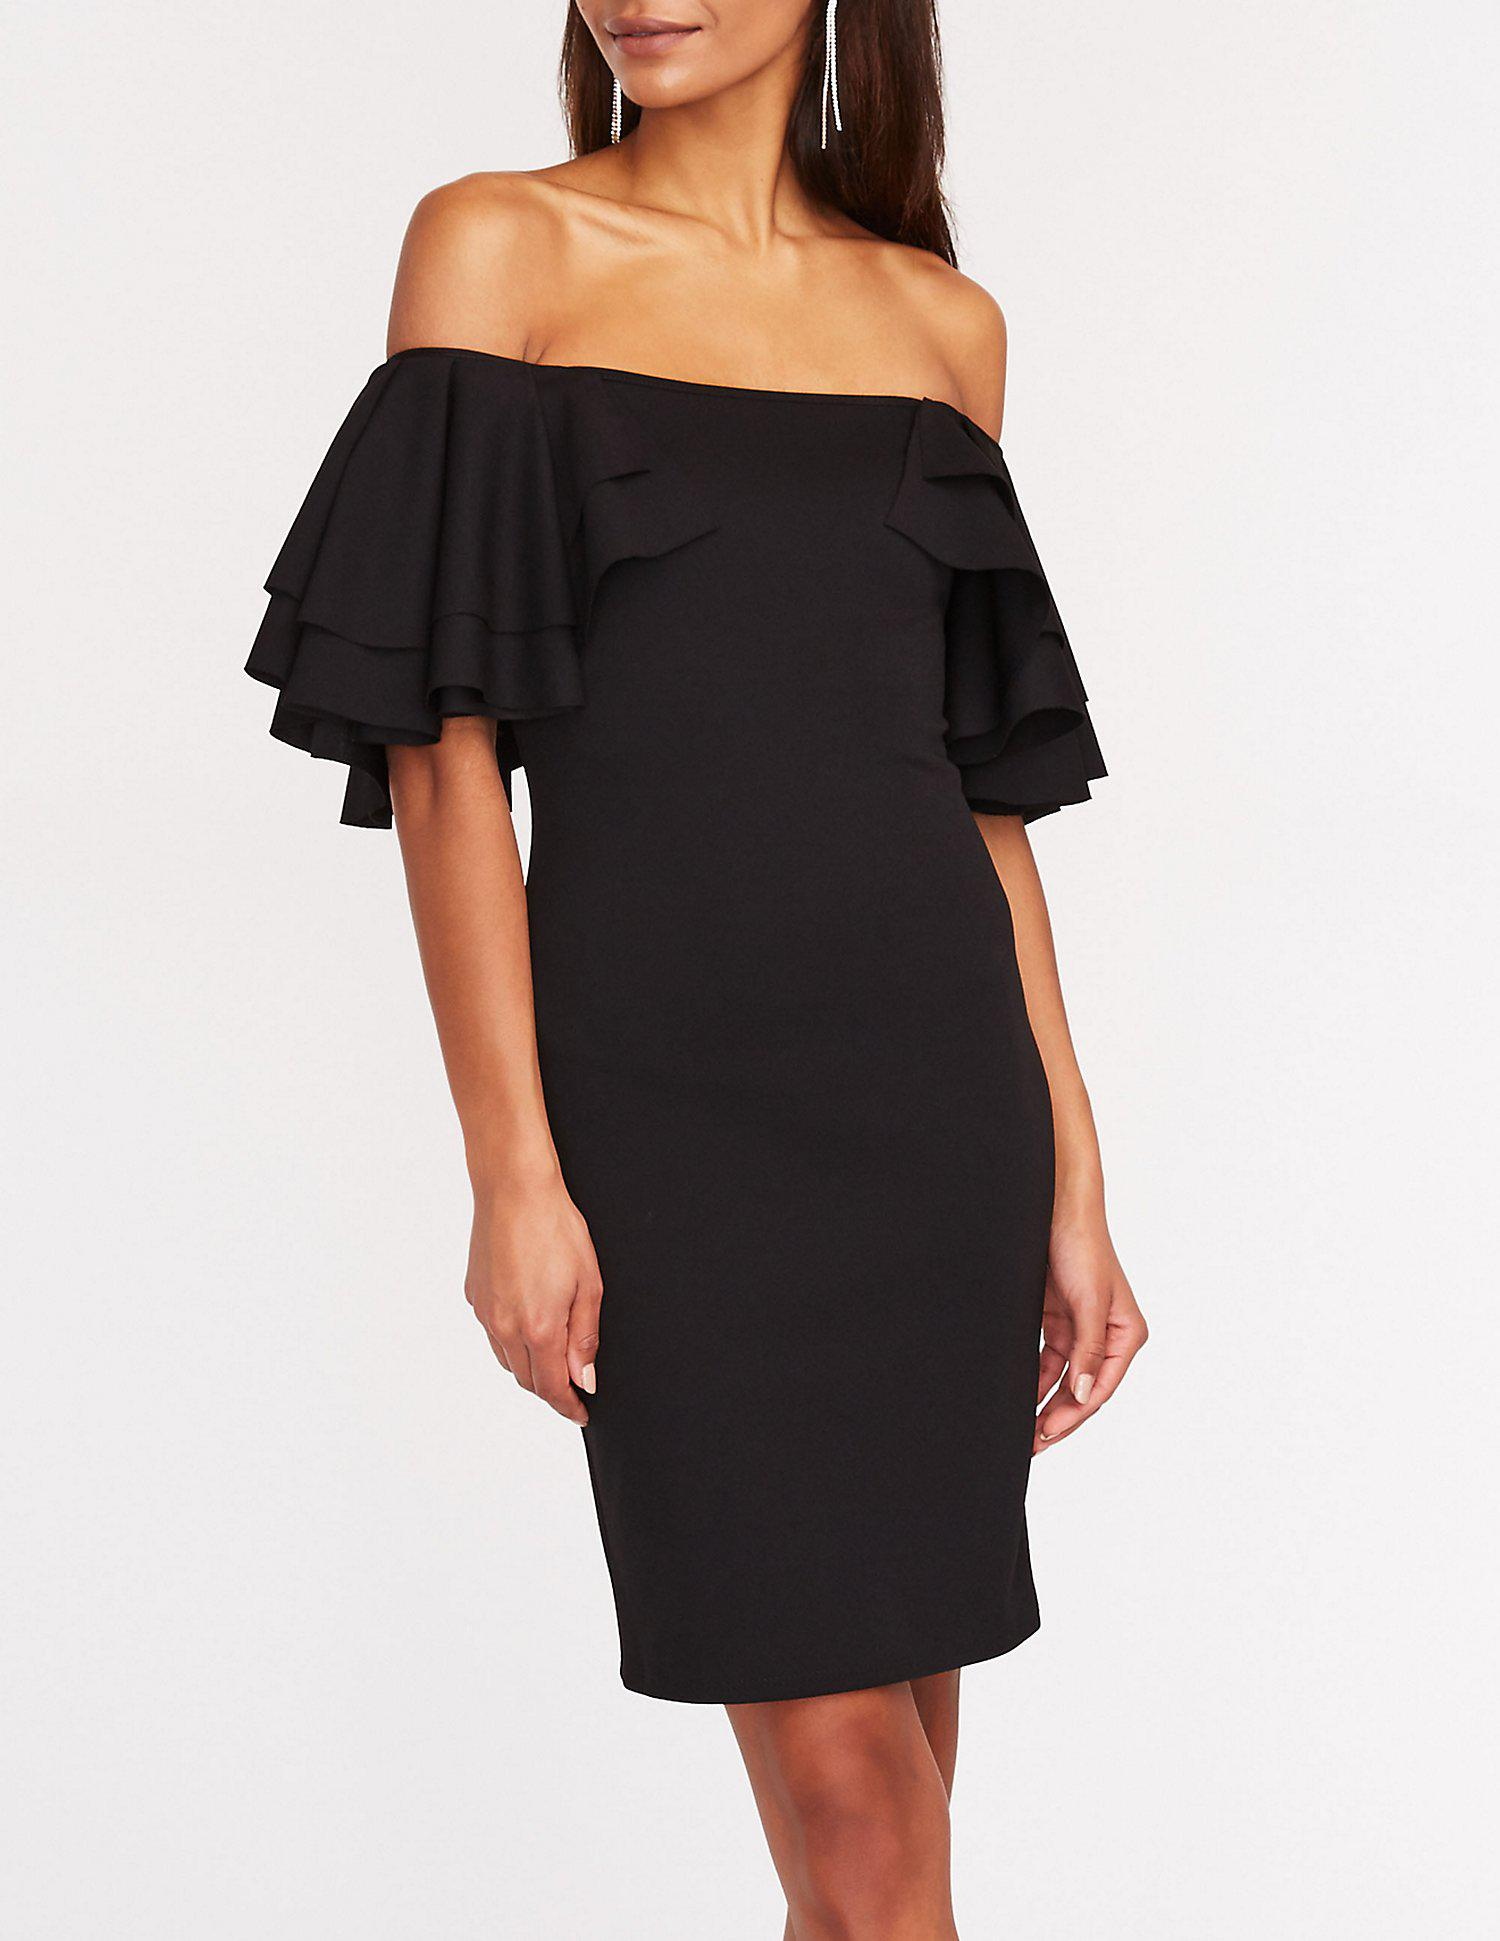 246df7a3363 Lyst - Charlotte Russe Off The Shoulder Ruffle Sleeve Dress in Black